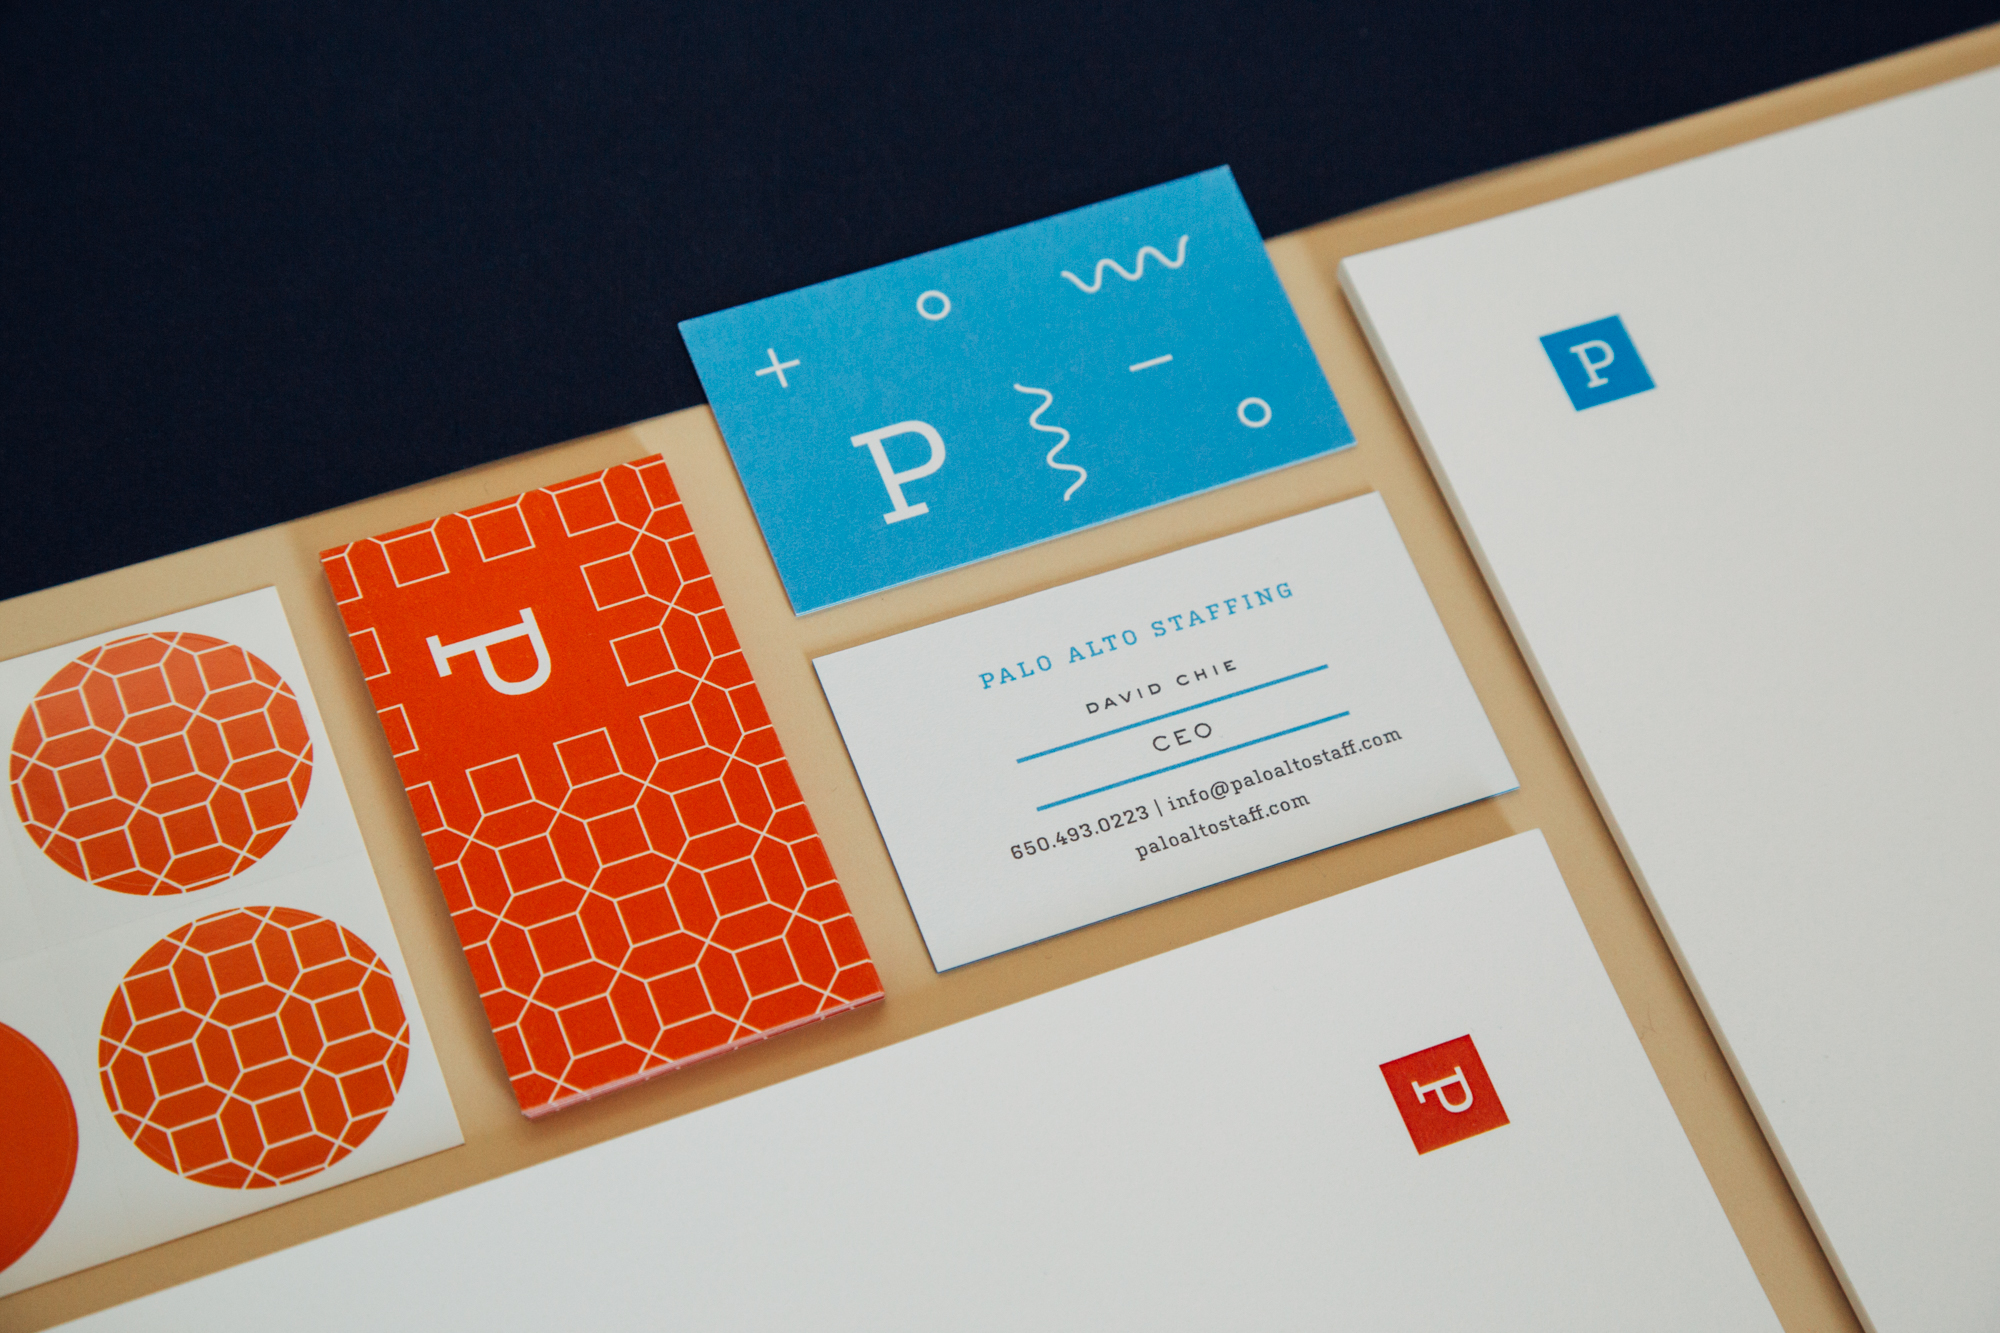 MOO + Crew: Take your idea from .psd to print - Crew.co